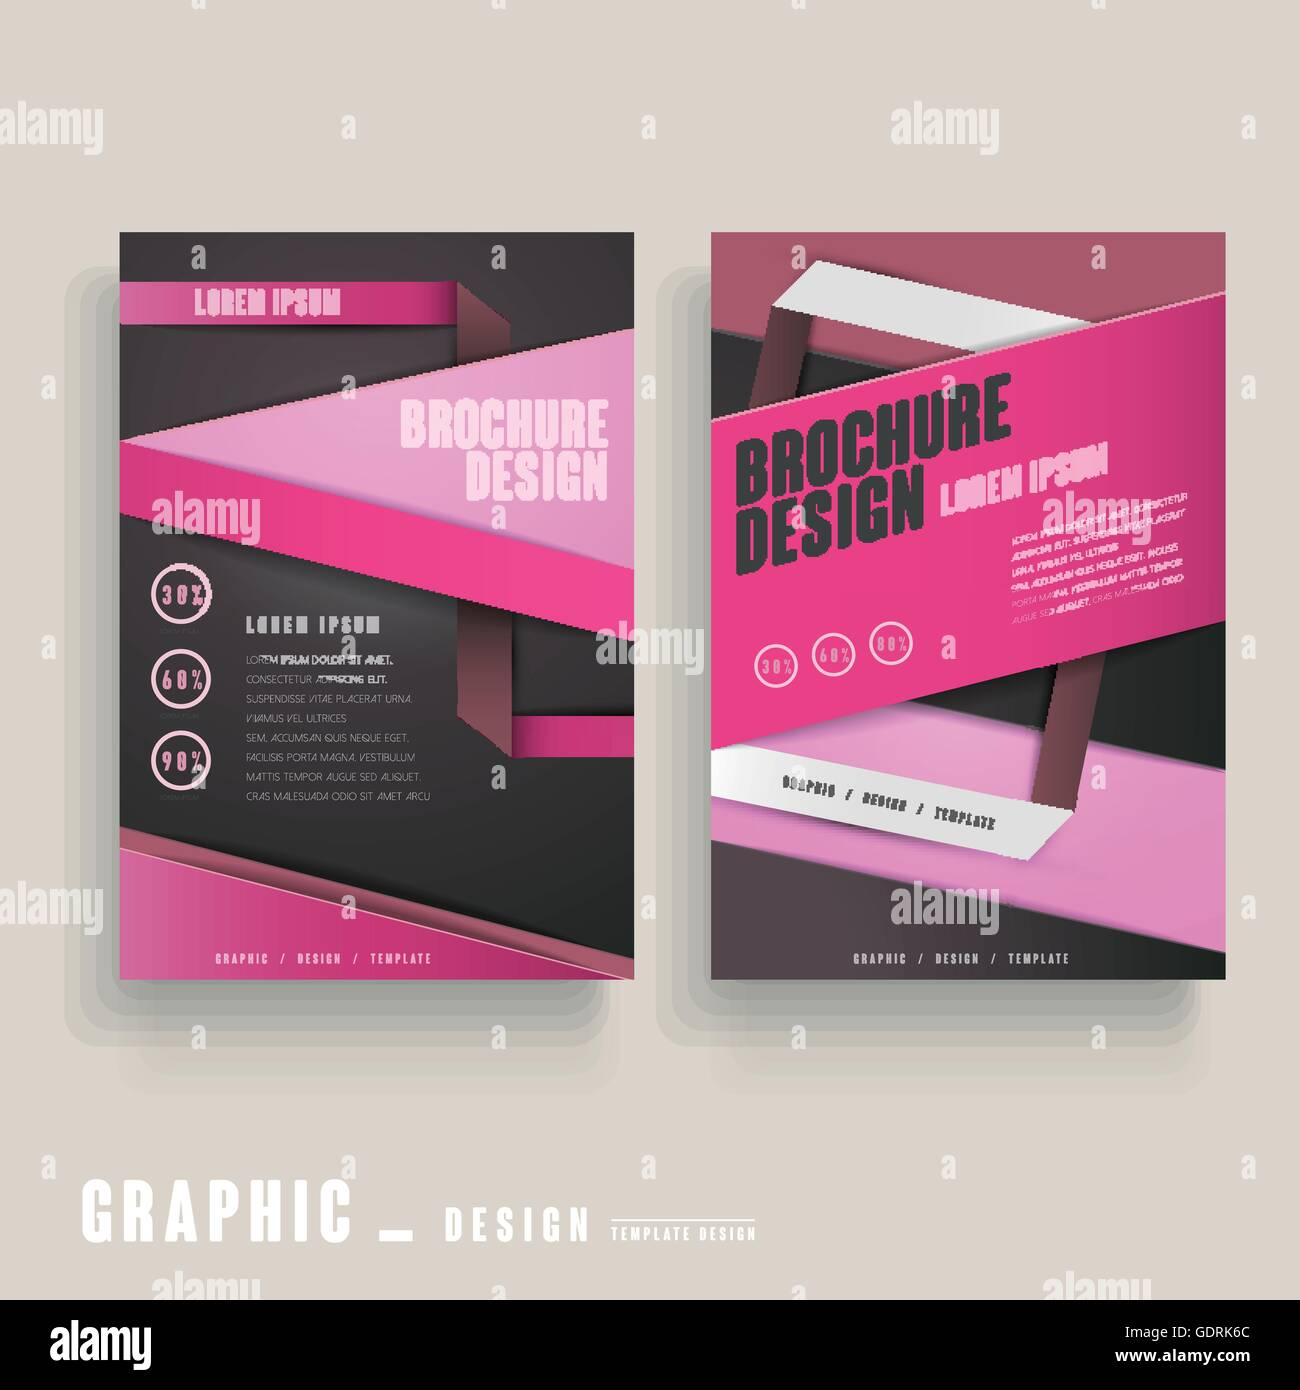 contemporary brochure template design in pink and black